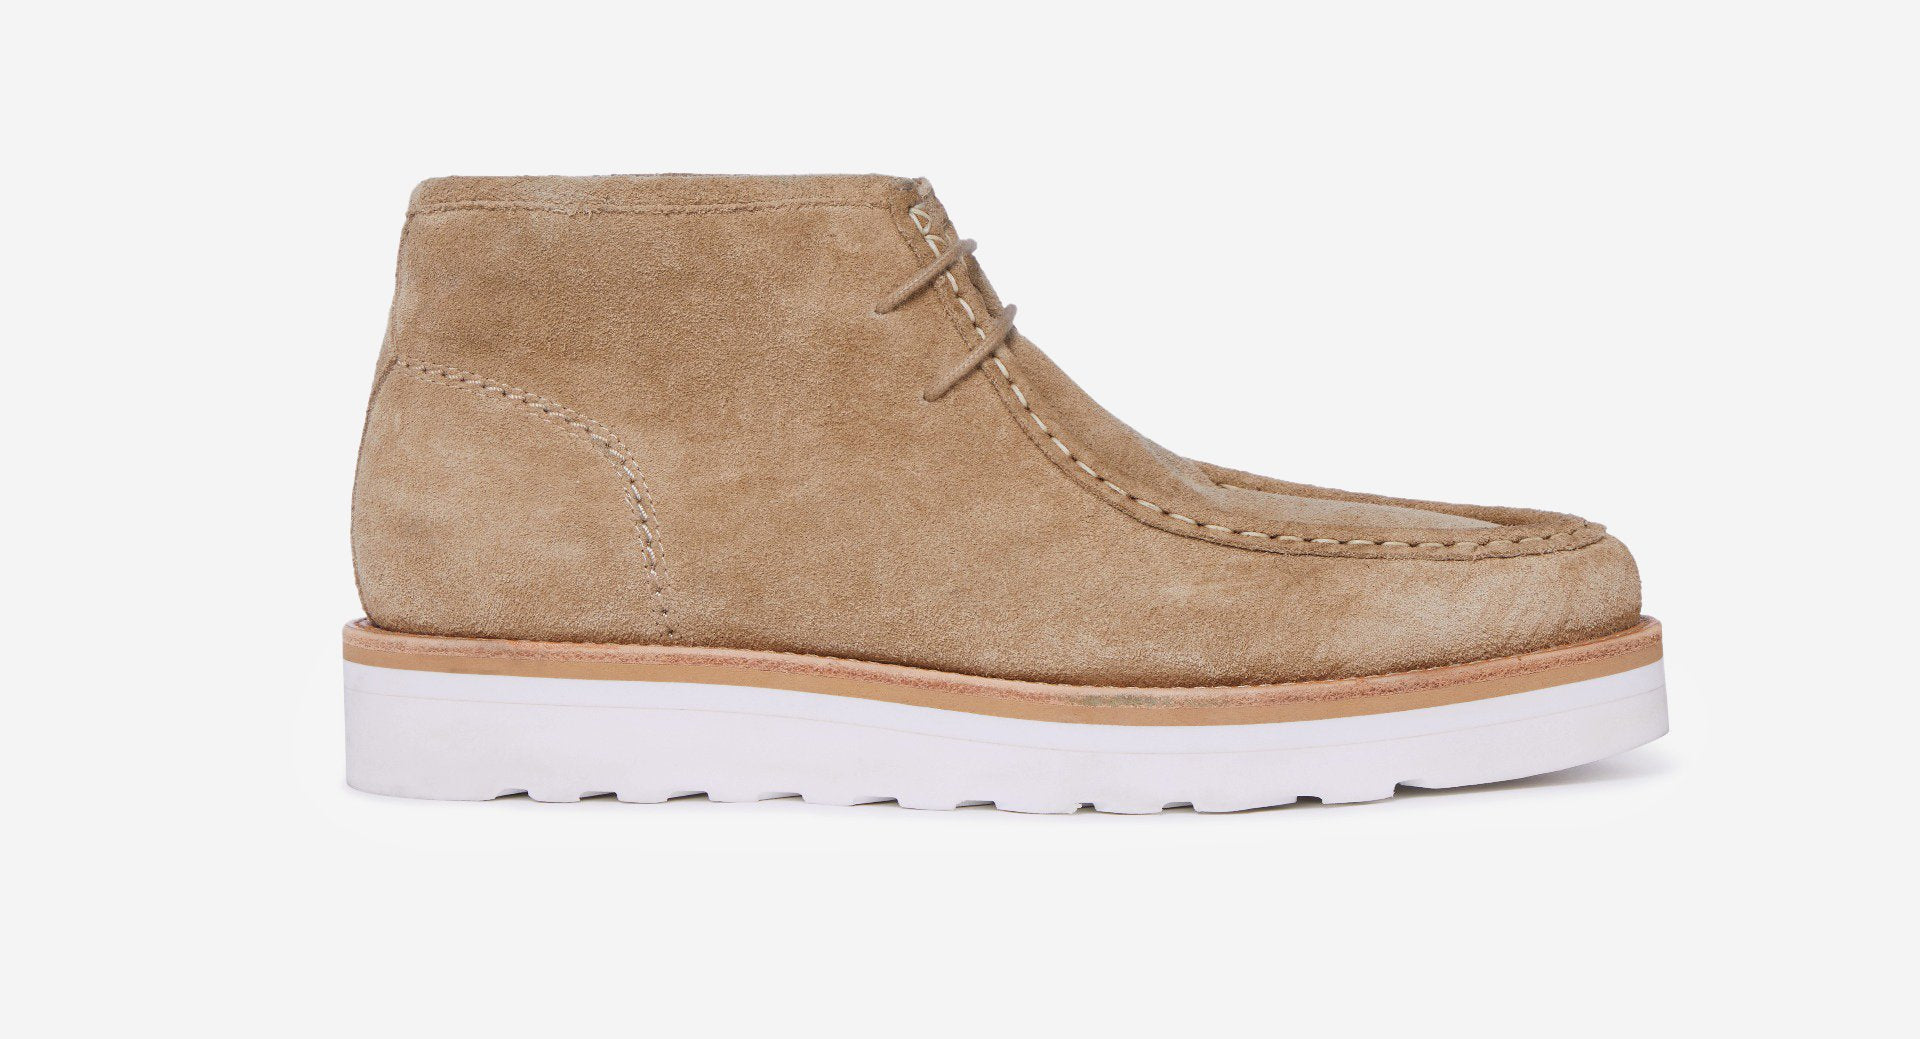 Calf Suede Moccasin Boots